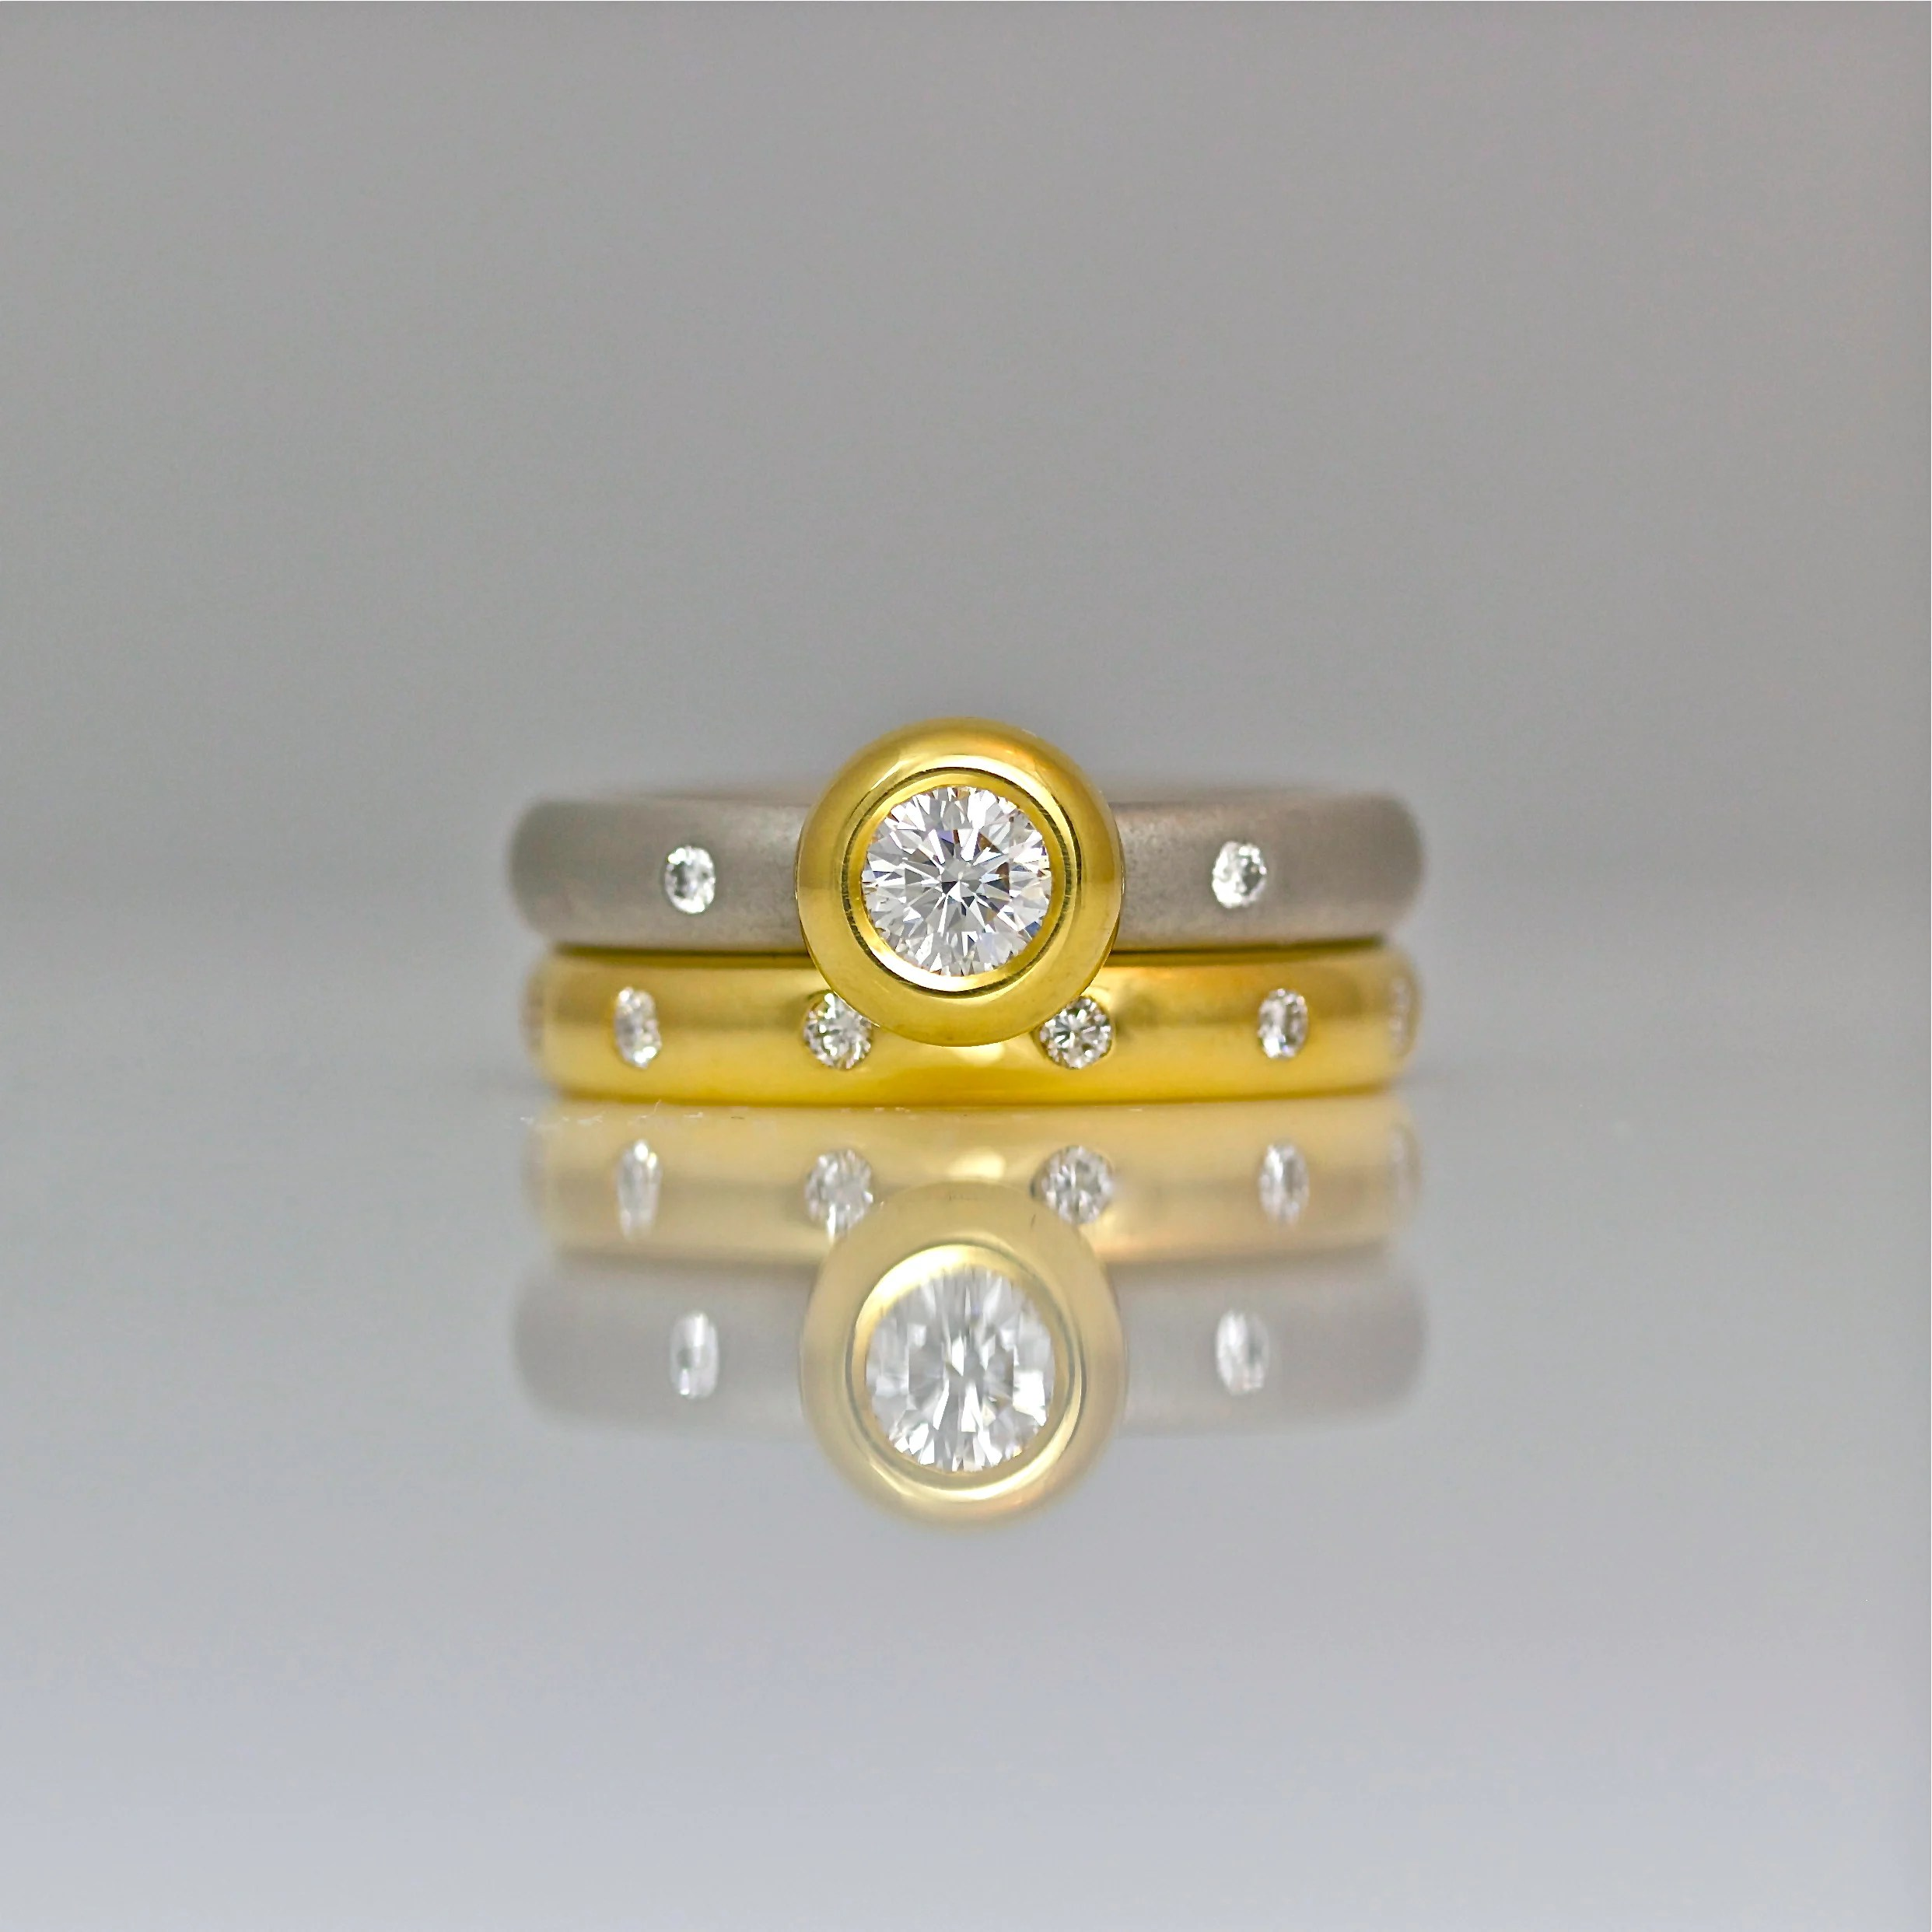 jewellery yellow campbelljewellers wedding gold master diamond jpg campbell set engagement and ring products